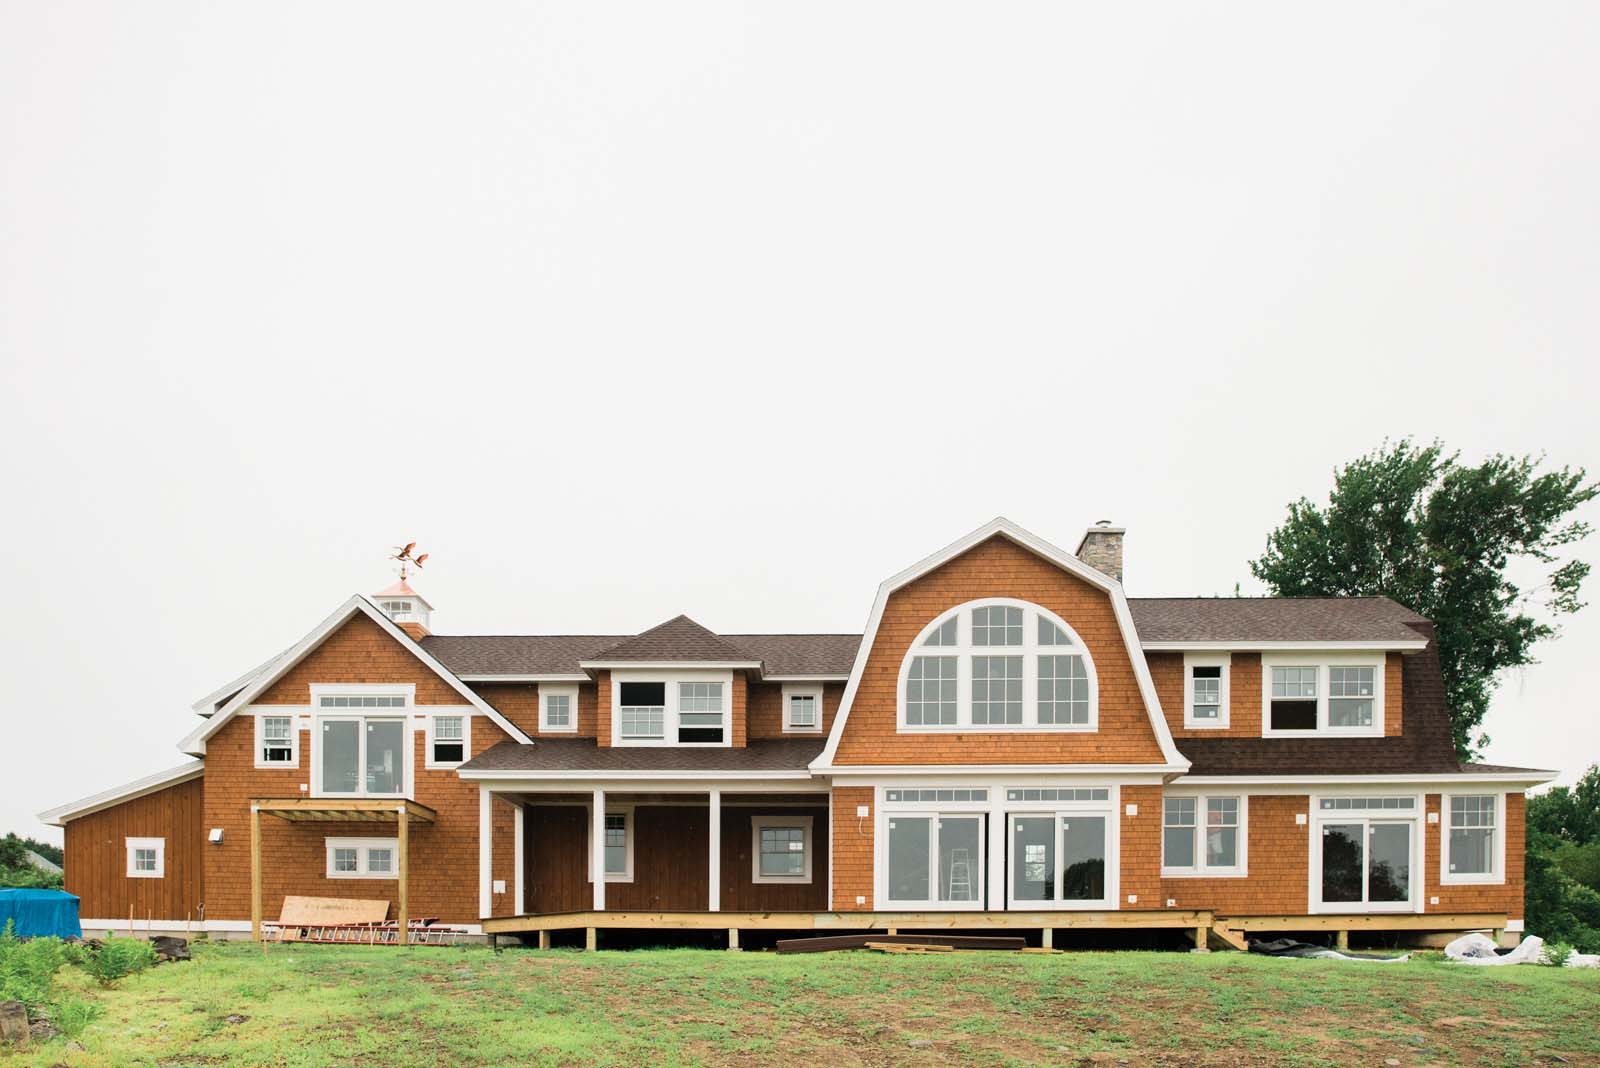 Family Ties: Larry Duell of Father and Son Builders - Maine Home + ...